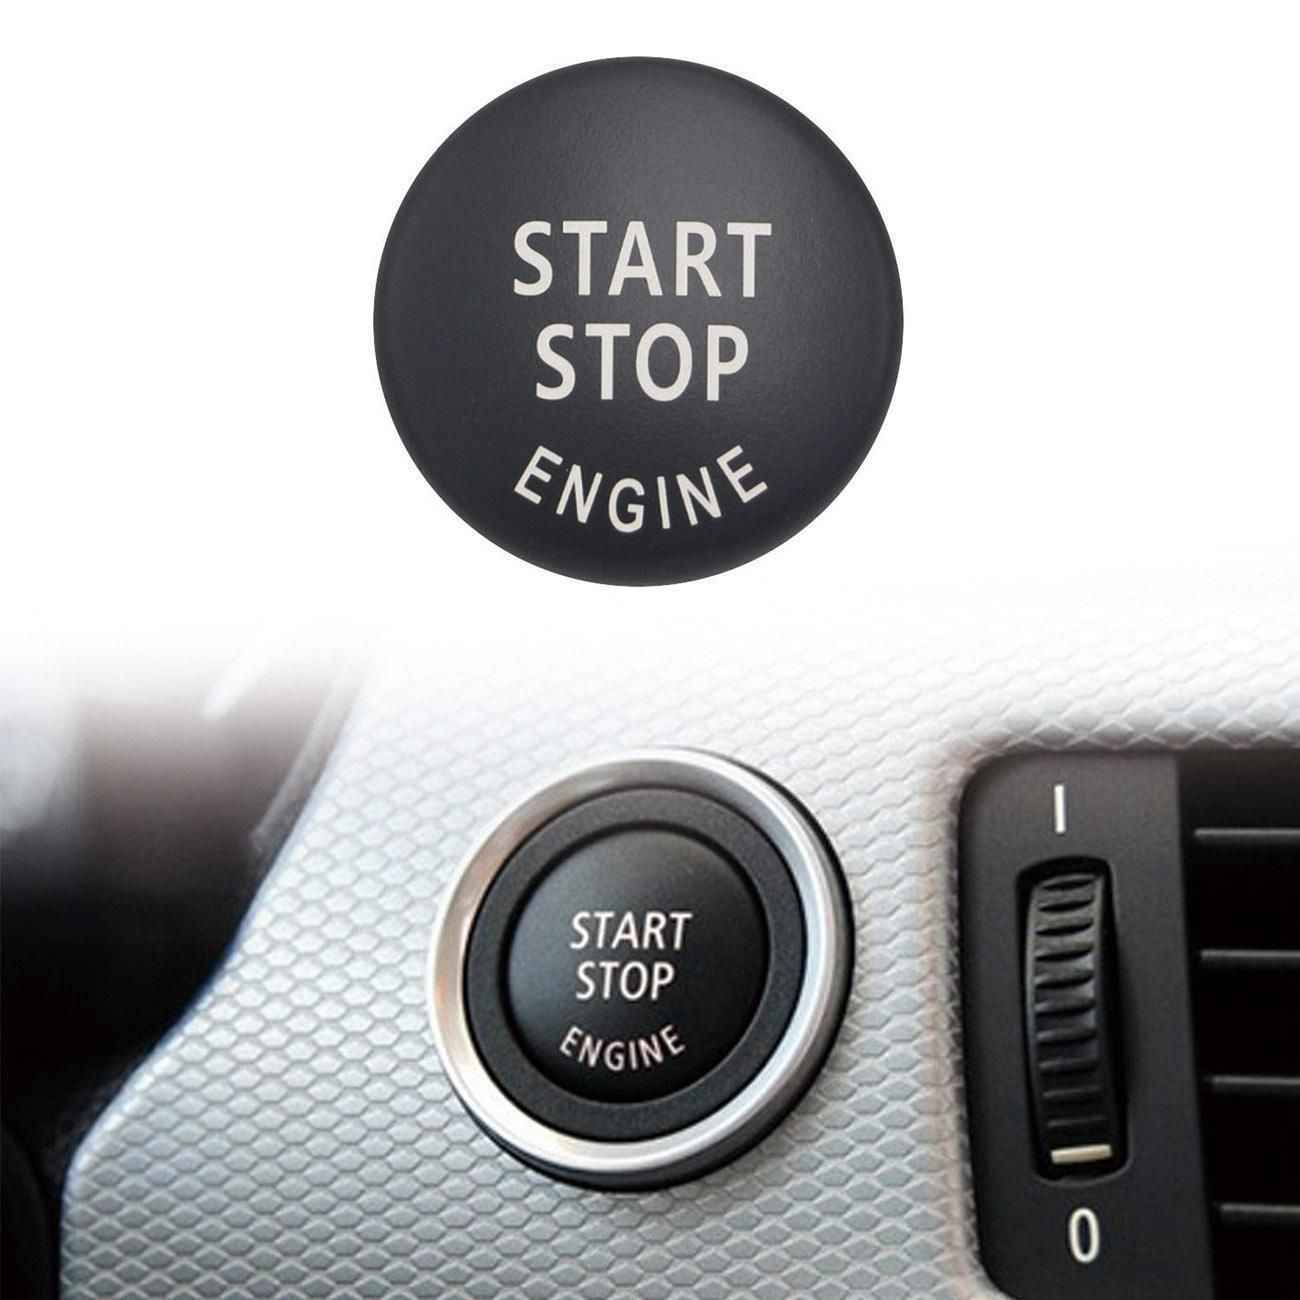 medium resolution of start stop engine button push button ignition switch cover replacement for bmw x1 x3 x5 x6